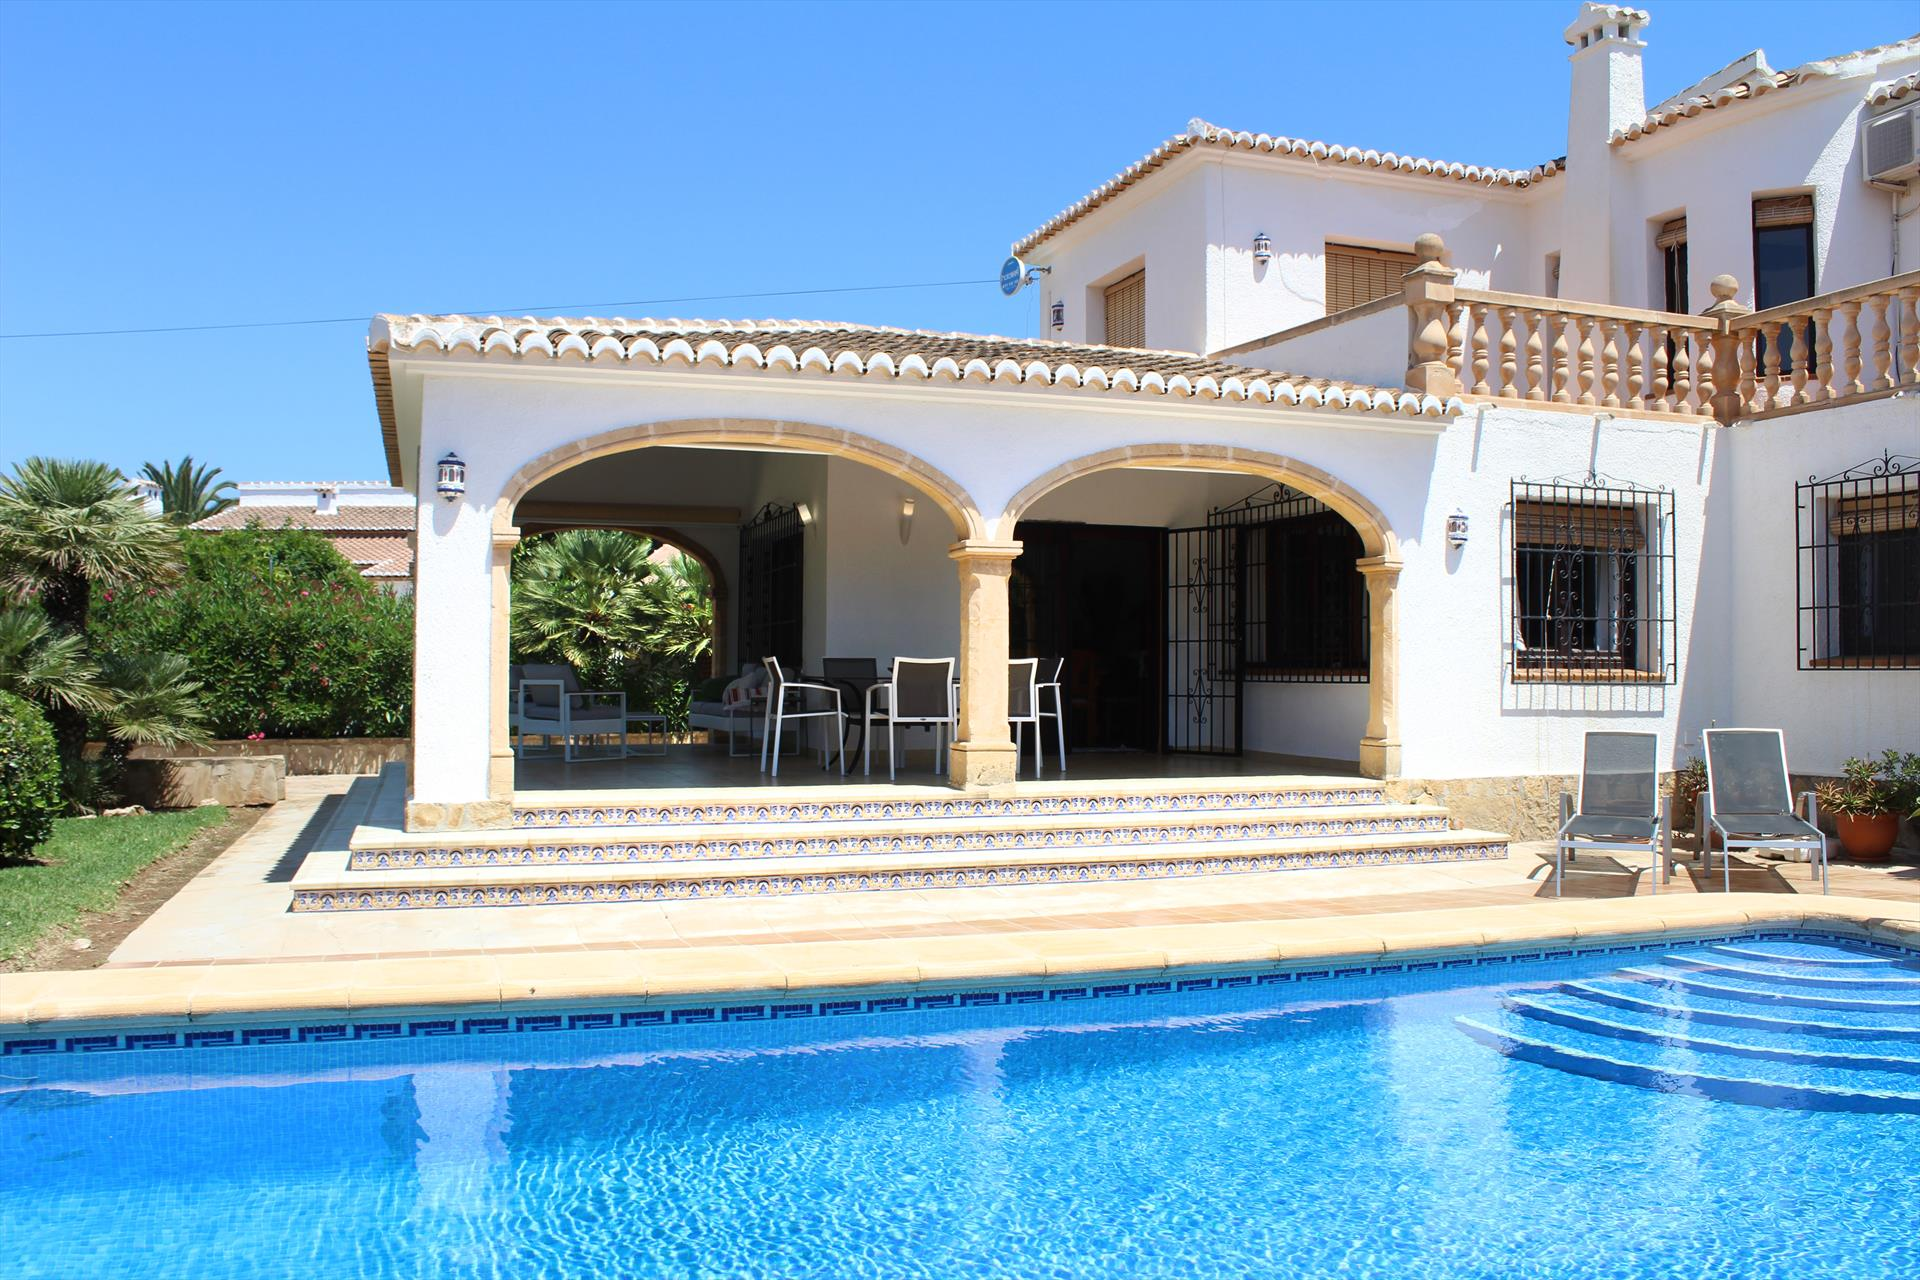 Villa Anna, Large and classic villa with private pool in Javea, on the Costa Blanca, Spain for 6 persons. The villa is situated in a.....